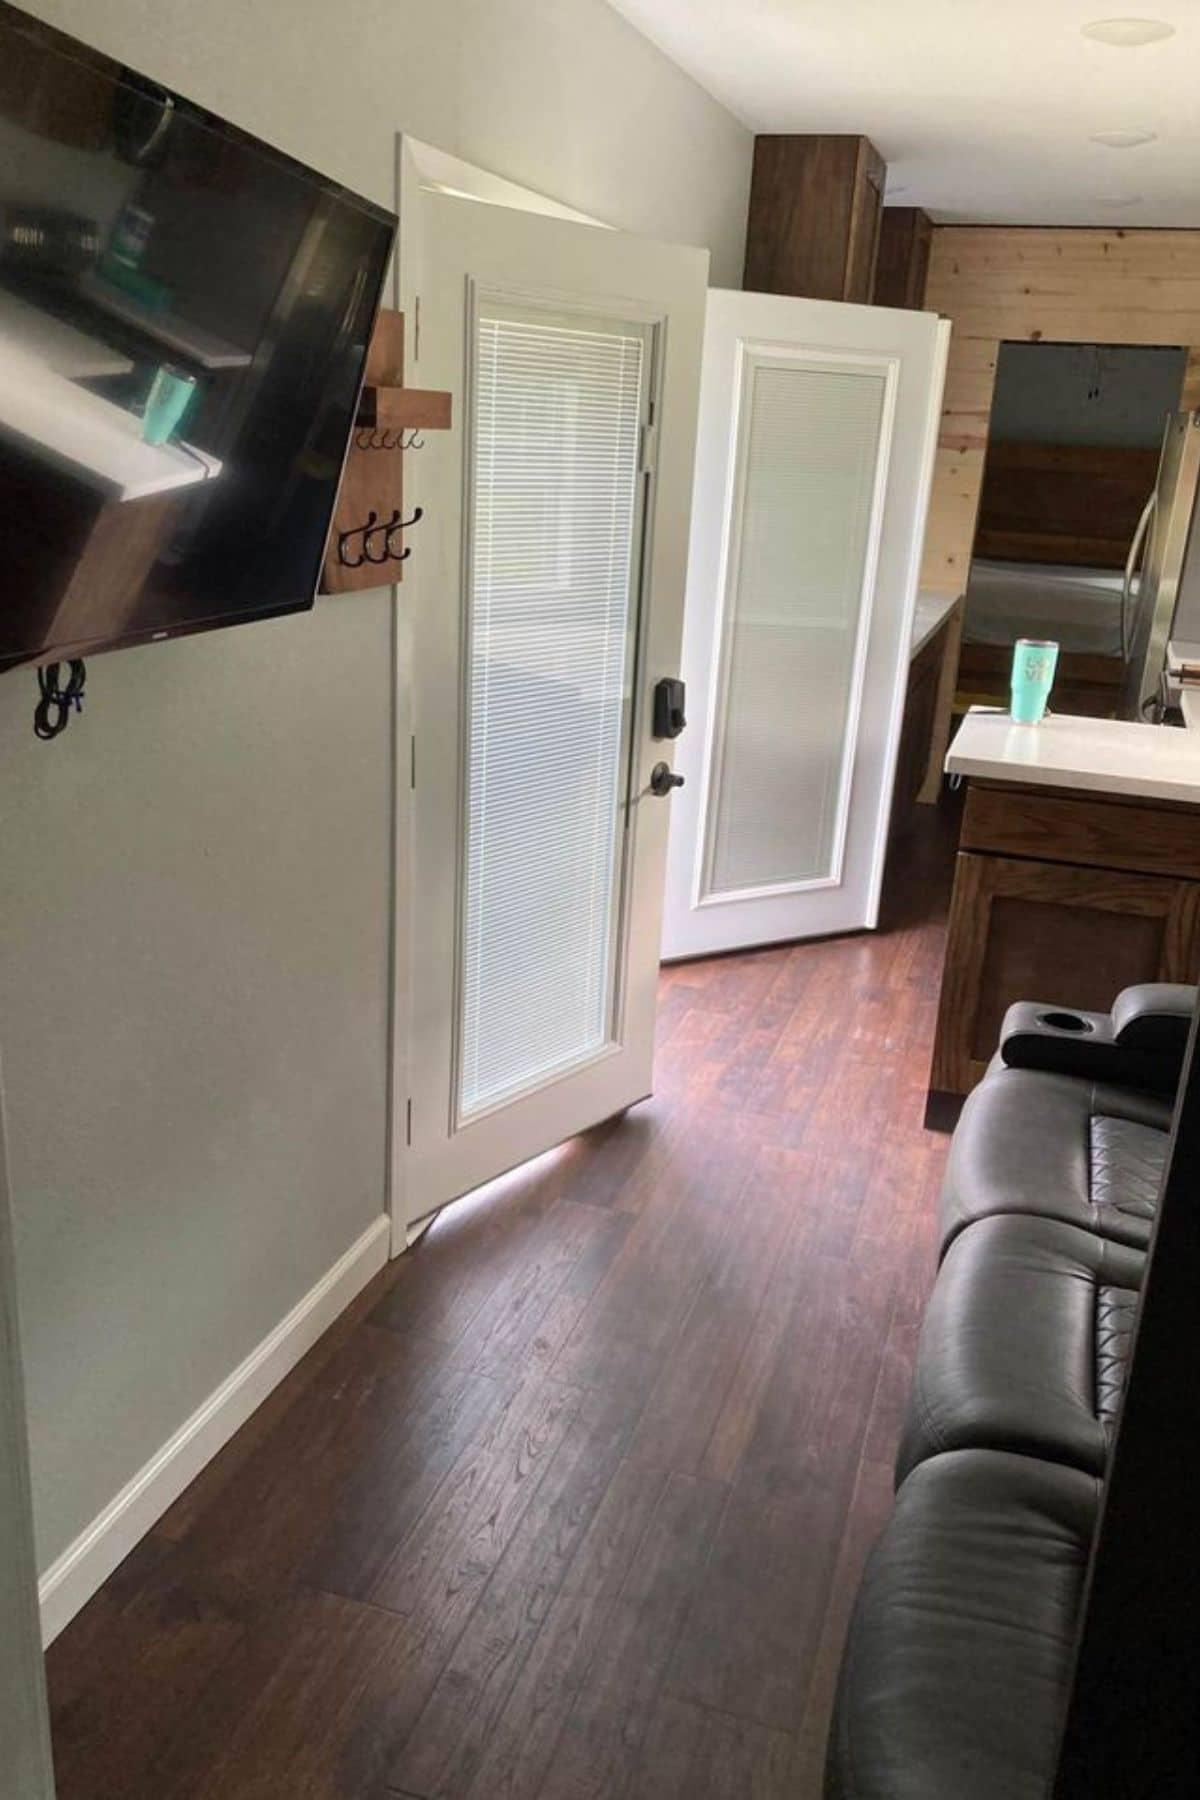 French doors opening into kitchen in tiny home